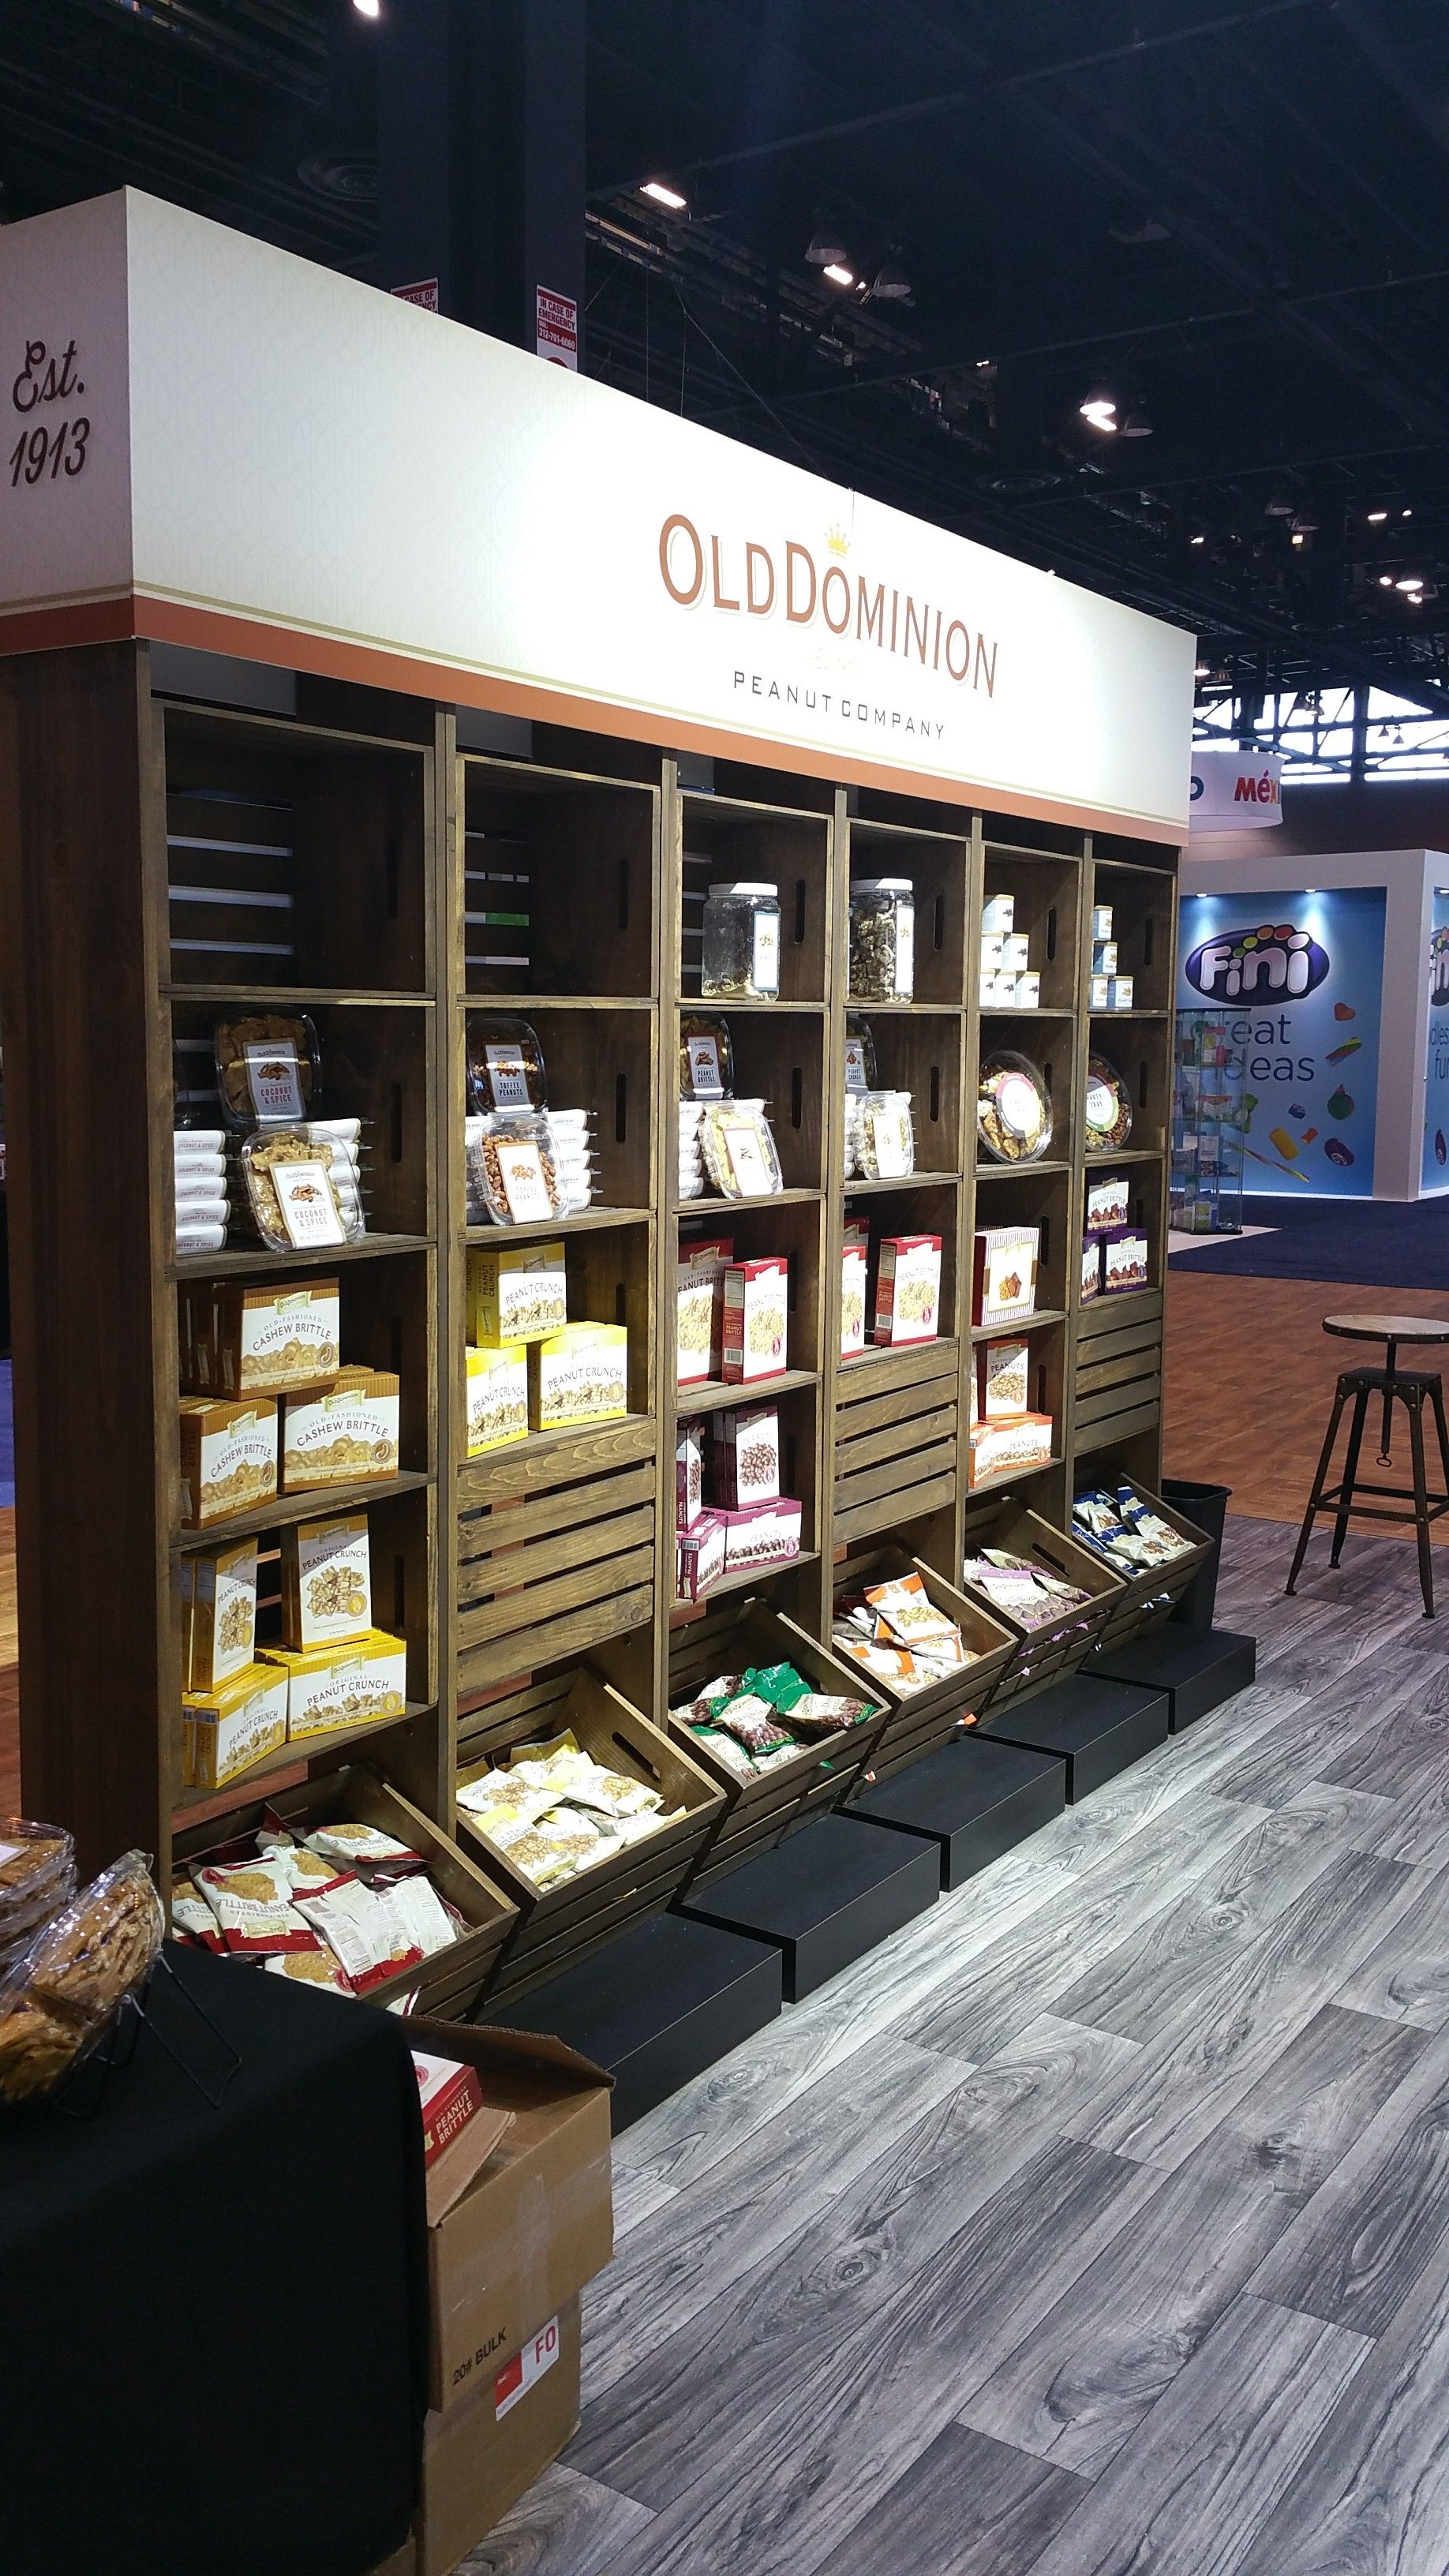 successful food booth designs  ref  pinterest  booth design . rustic tradeshow booth design for old dominion snack company